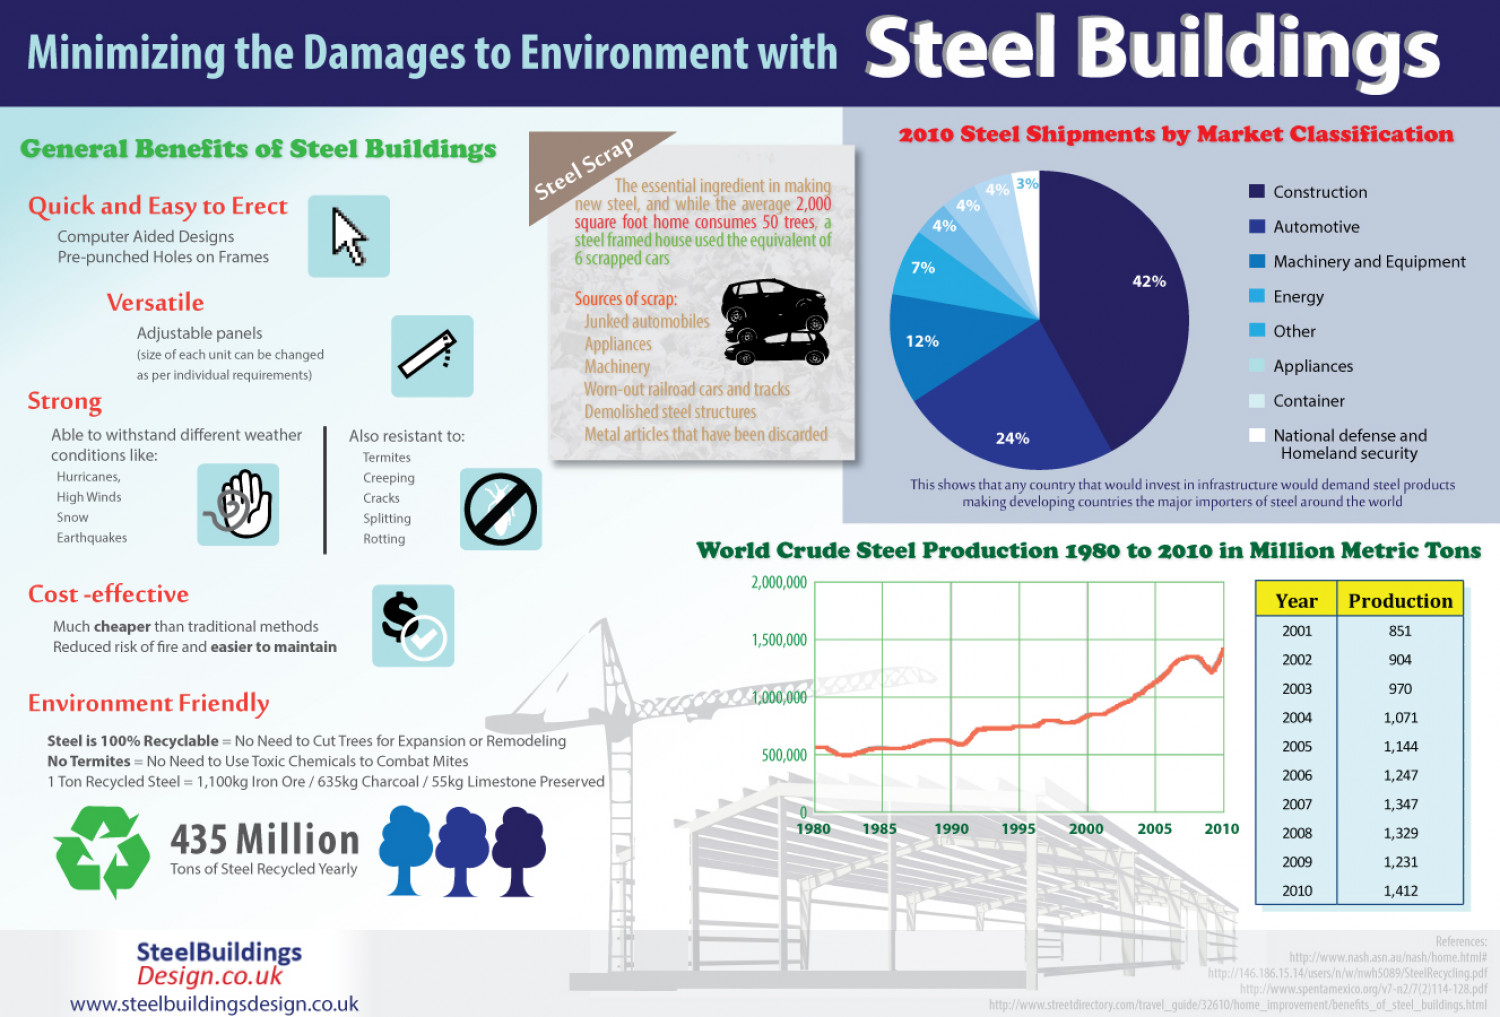 Minimizing the Damages to Environment with Steel Buildings Infographic